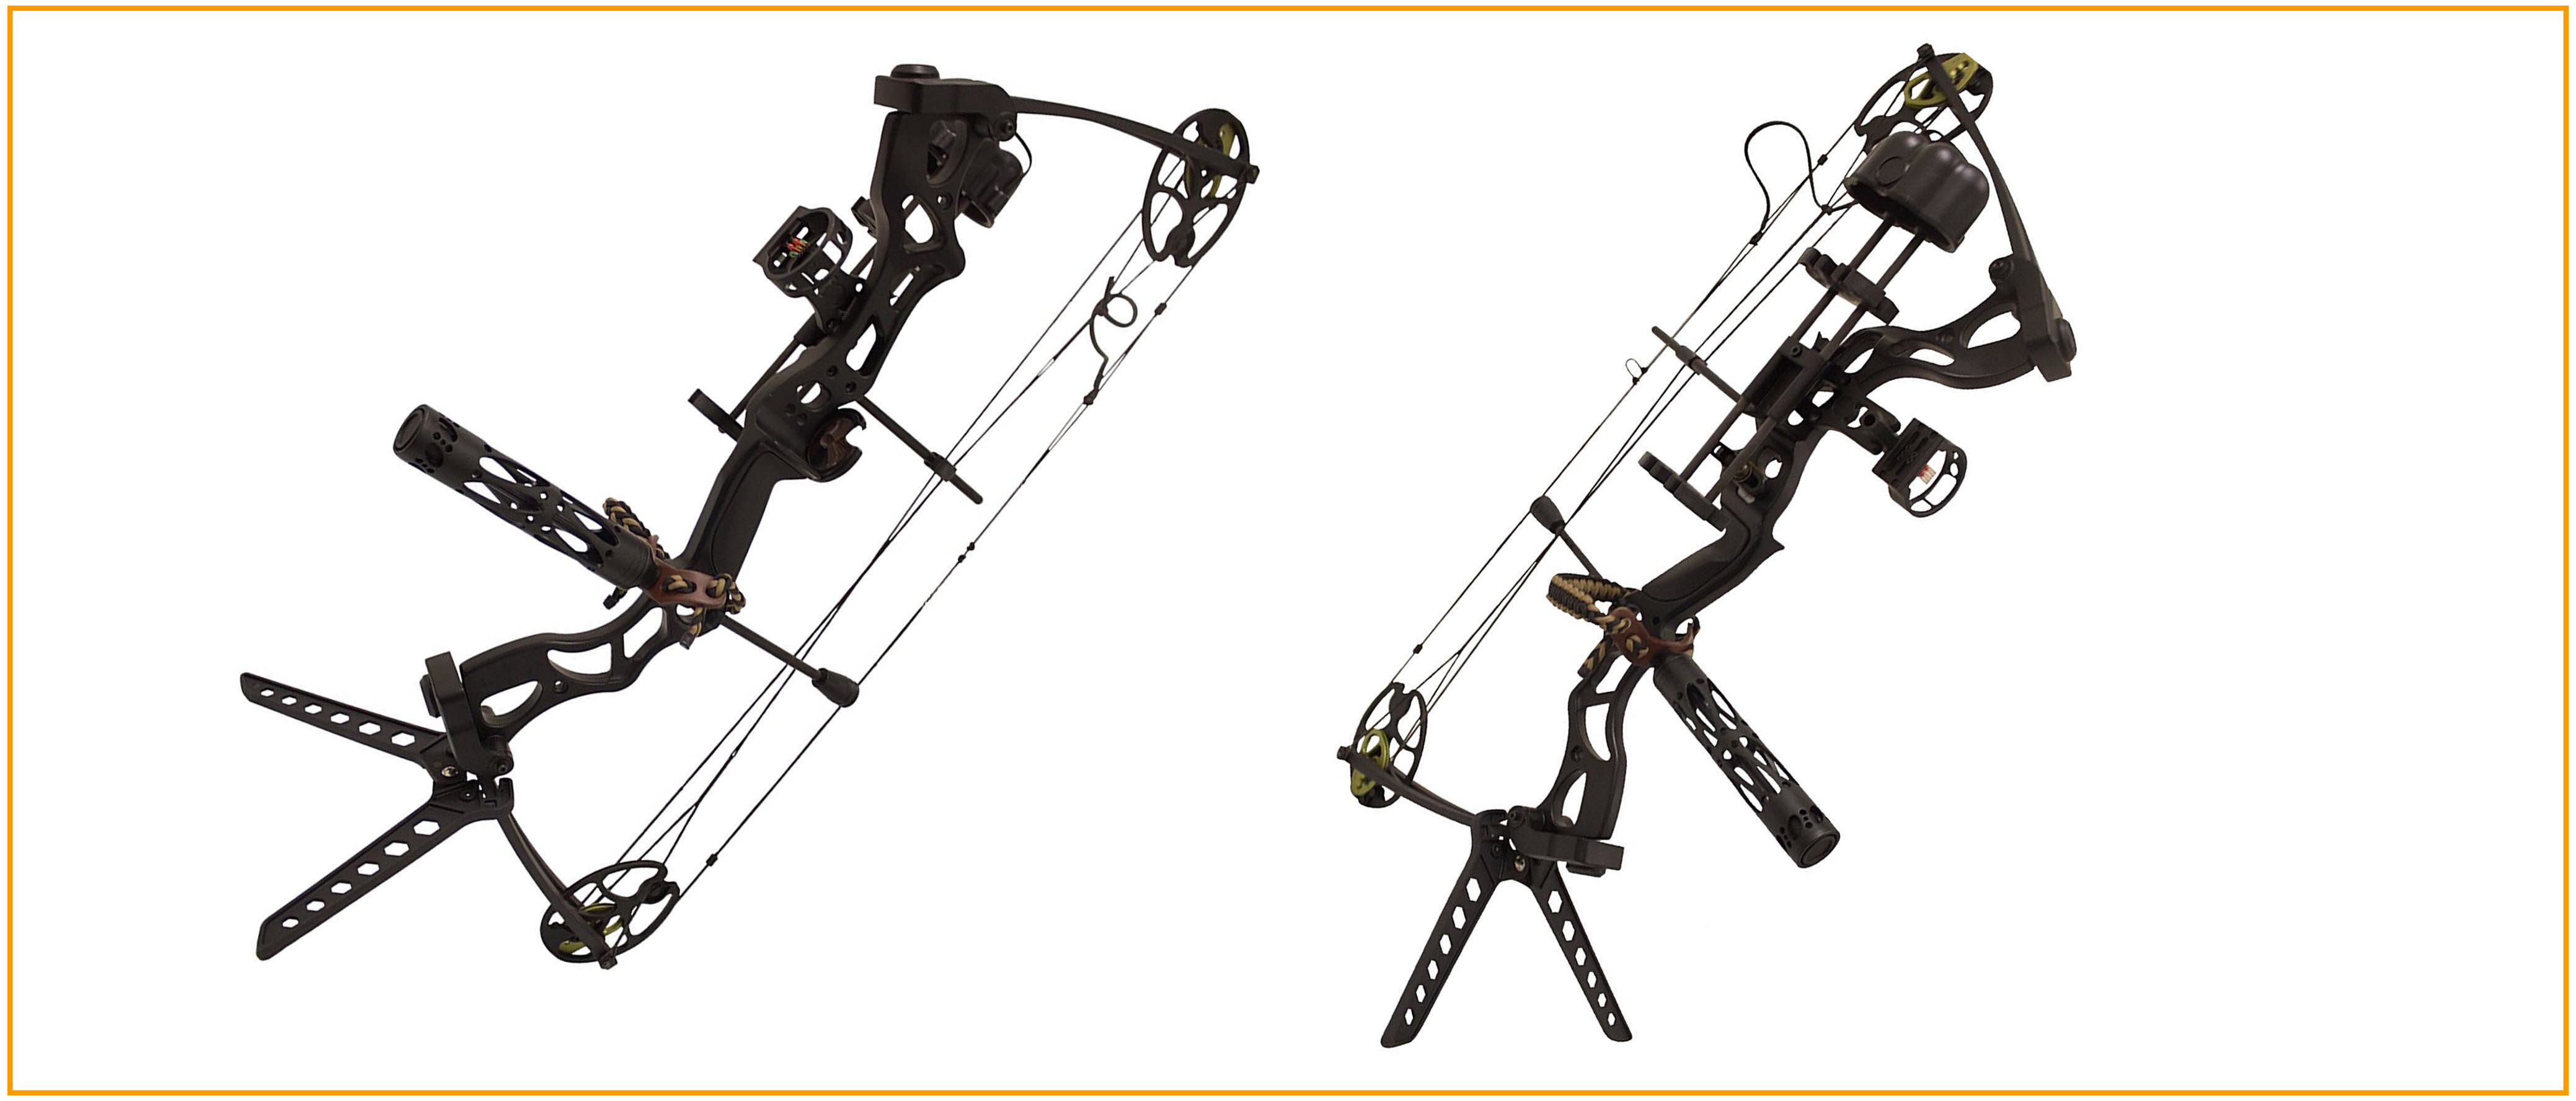 SAS-Rage-70-Lbs-30-Compound-Bow-e1525202449845 (1)